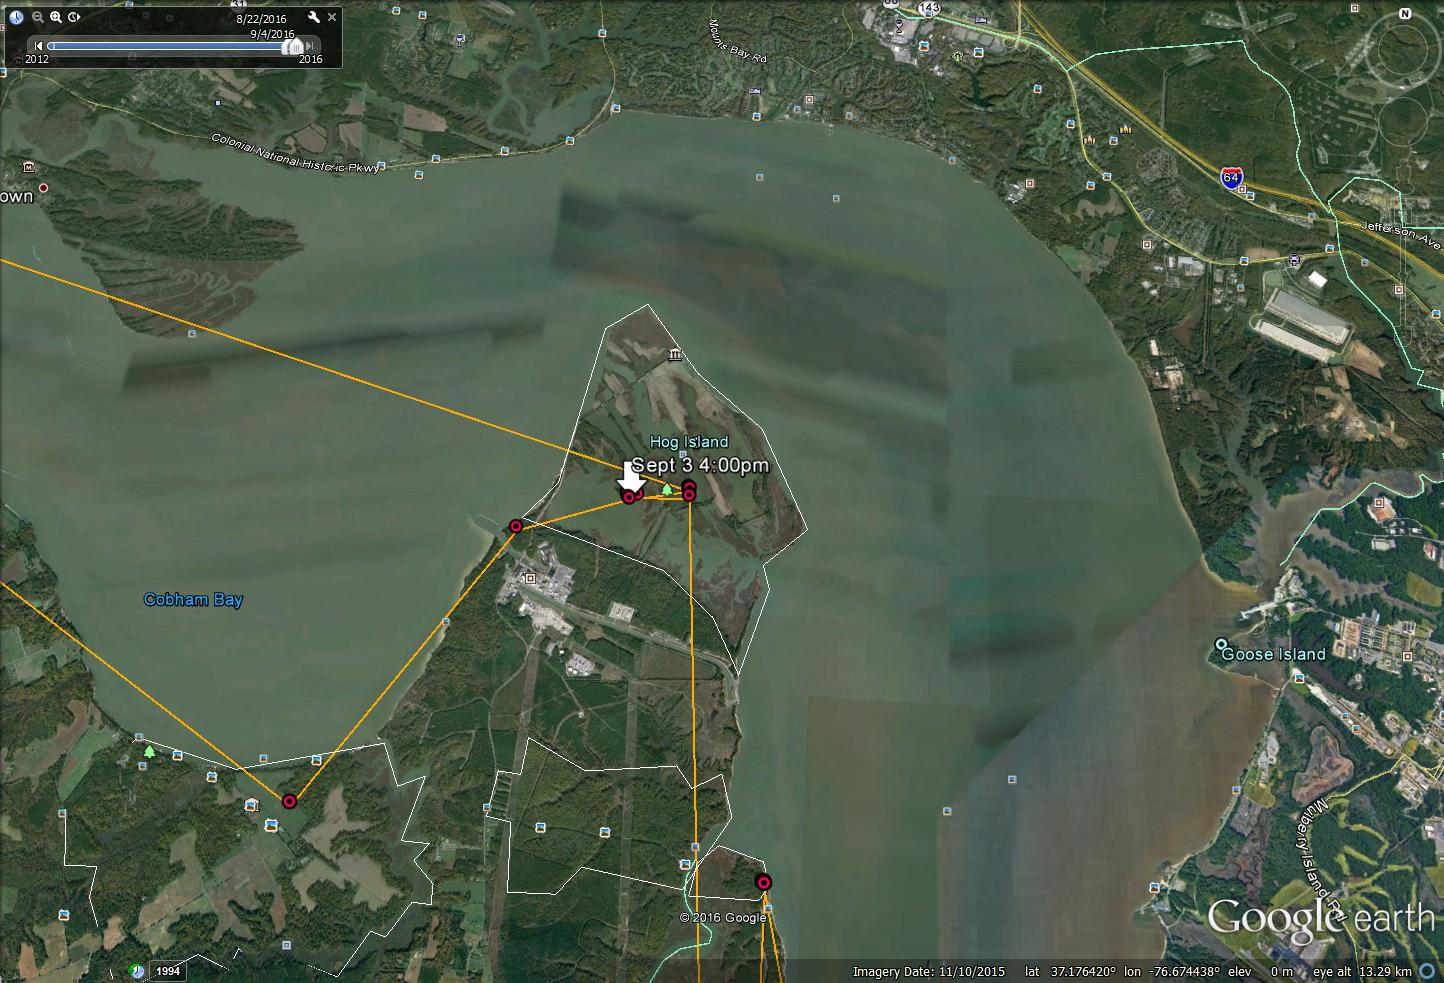 Grace Flies to Hog Island on James River 9/3/2016 - The ... on map of newport nc, map of marshall nc, map of greensboro nc, map of belmont nc, map of fairfax nc, map of inverness nc, map of eden nc, map of halifax nc, map of waterford nc, map of jacksonville nc, map of concord nc, map of lincoln nc, map of oakland nc, map of mount pleasant nc, map of florence nc, map of mount holly nc, map of jamestown nc, map of morrisville nc, map of salisbury nc, map of franklin nc,